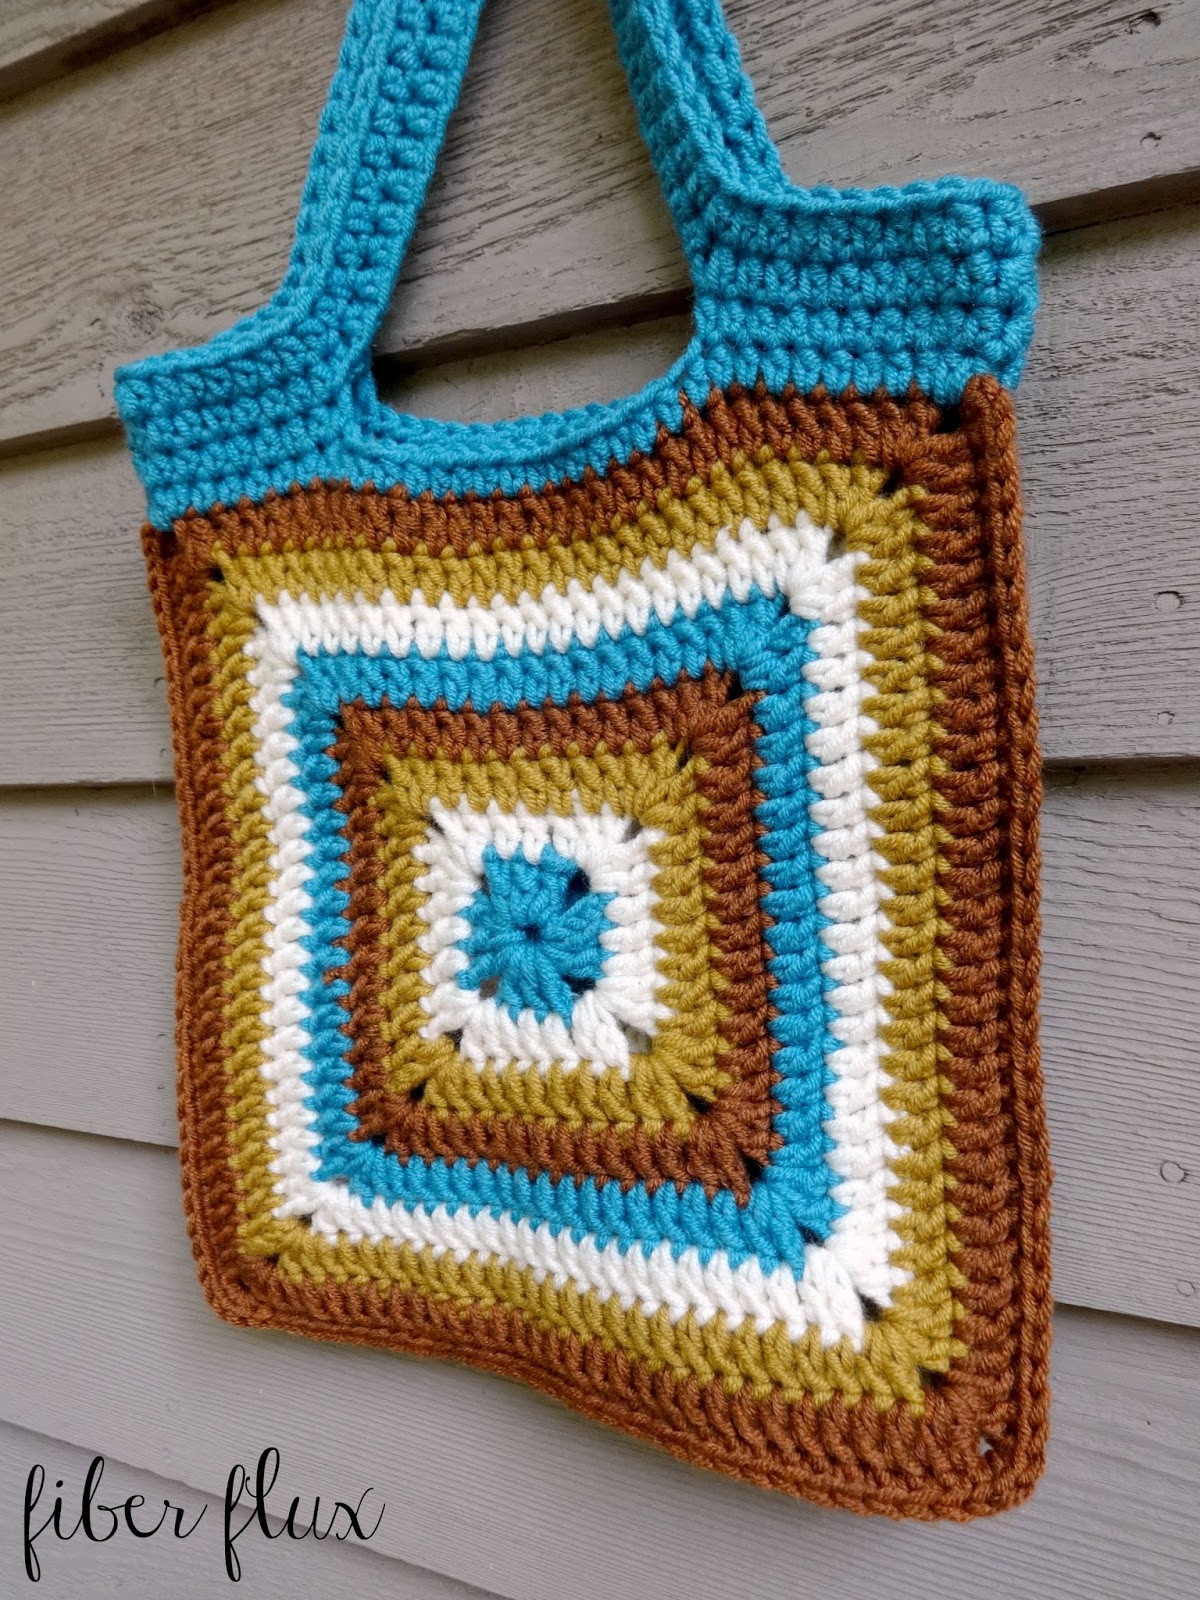 Beautiful Fiber Flux Free Crochet Pattern Nature Walk tote Crochet tote Of Adorable 41 Images Crochet tote